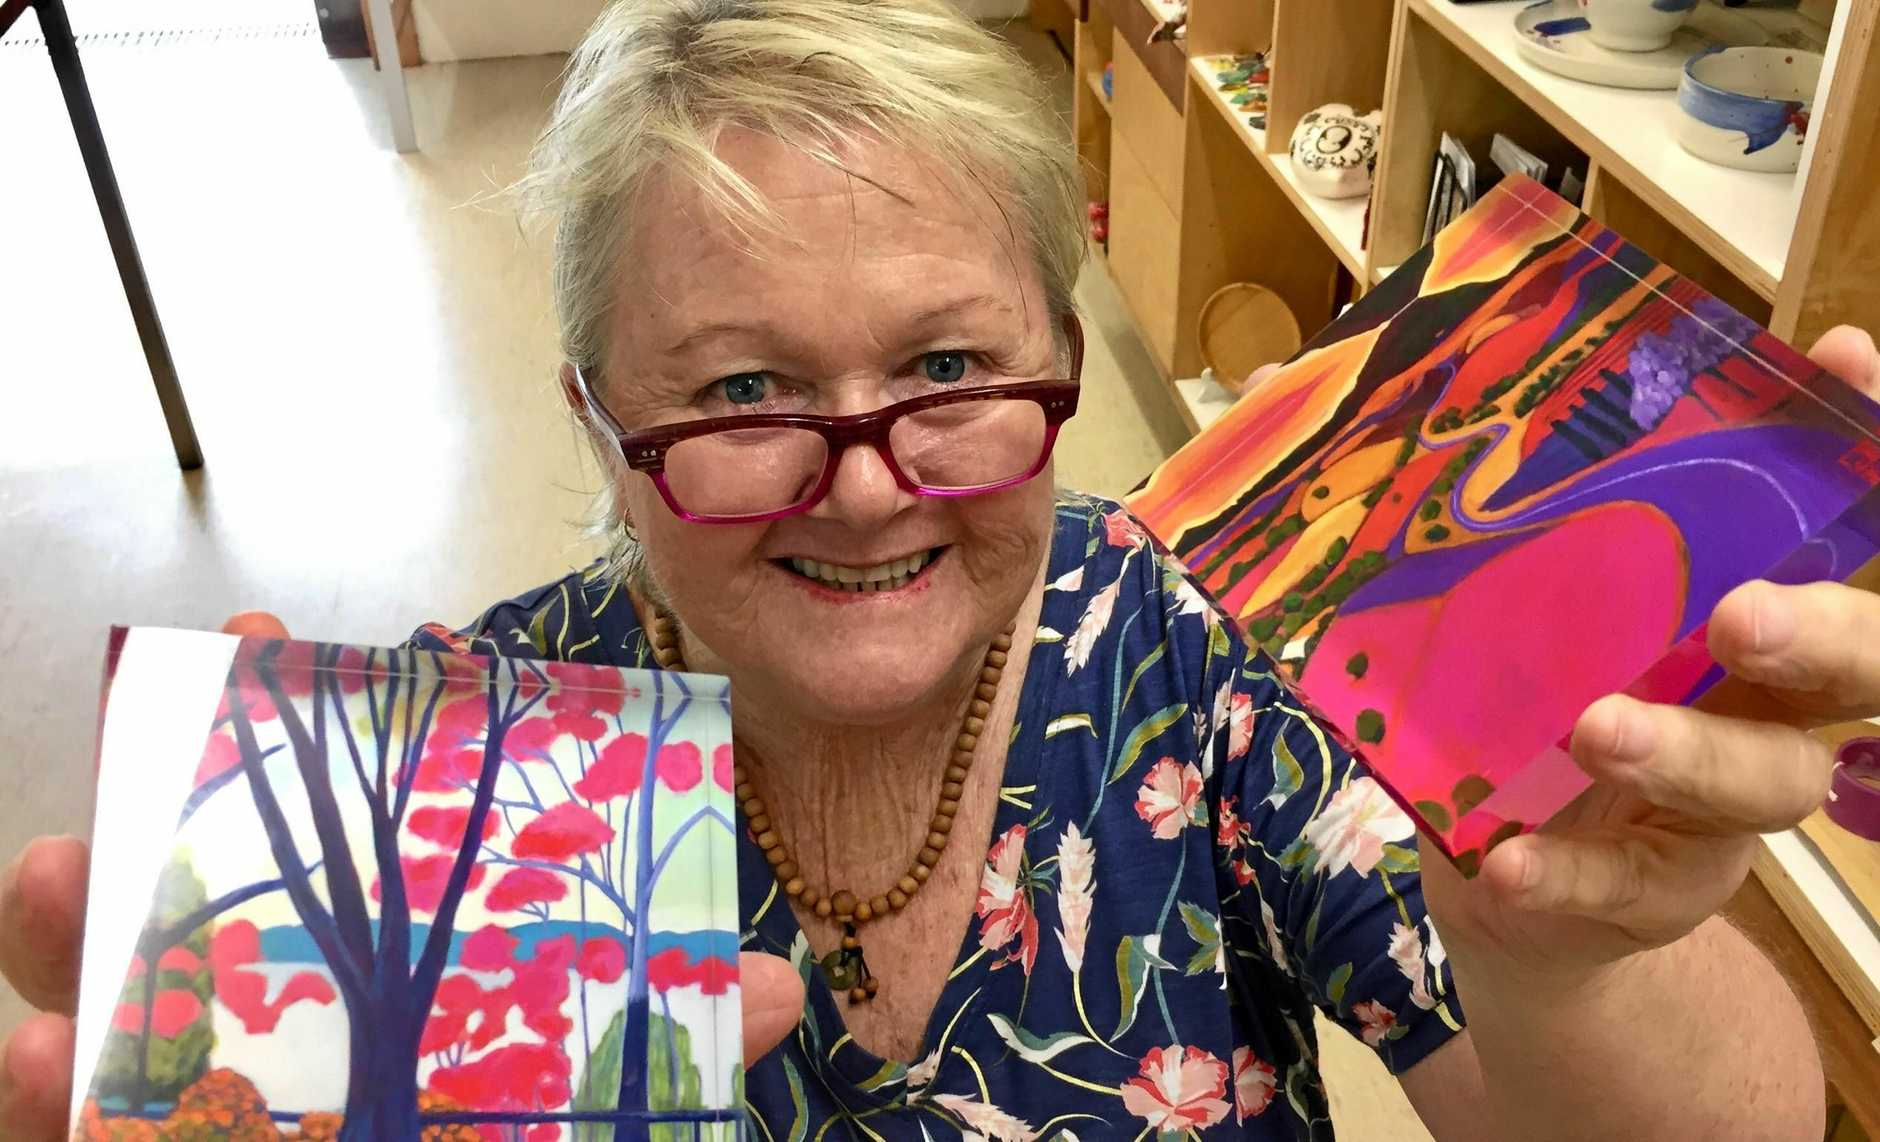 Cooroy artist Dale Leach was commissioned to paint a landscape of the Sunshine Coast for the Mayor's office.